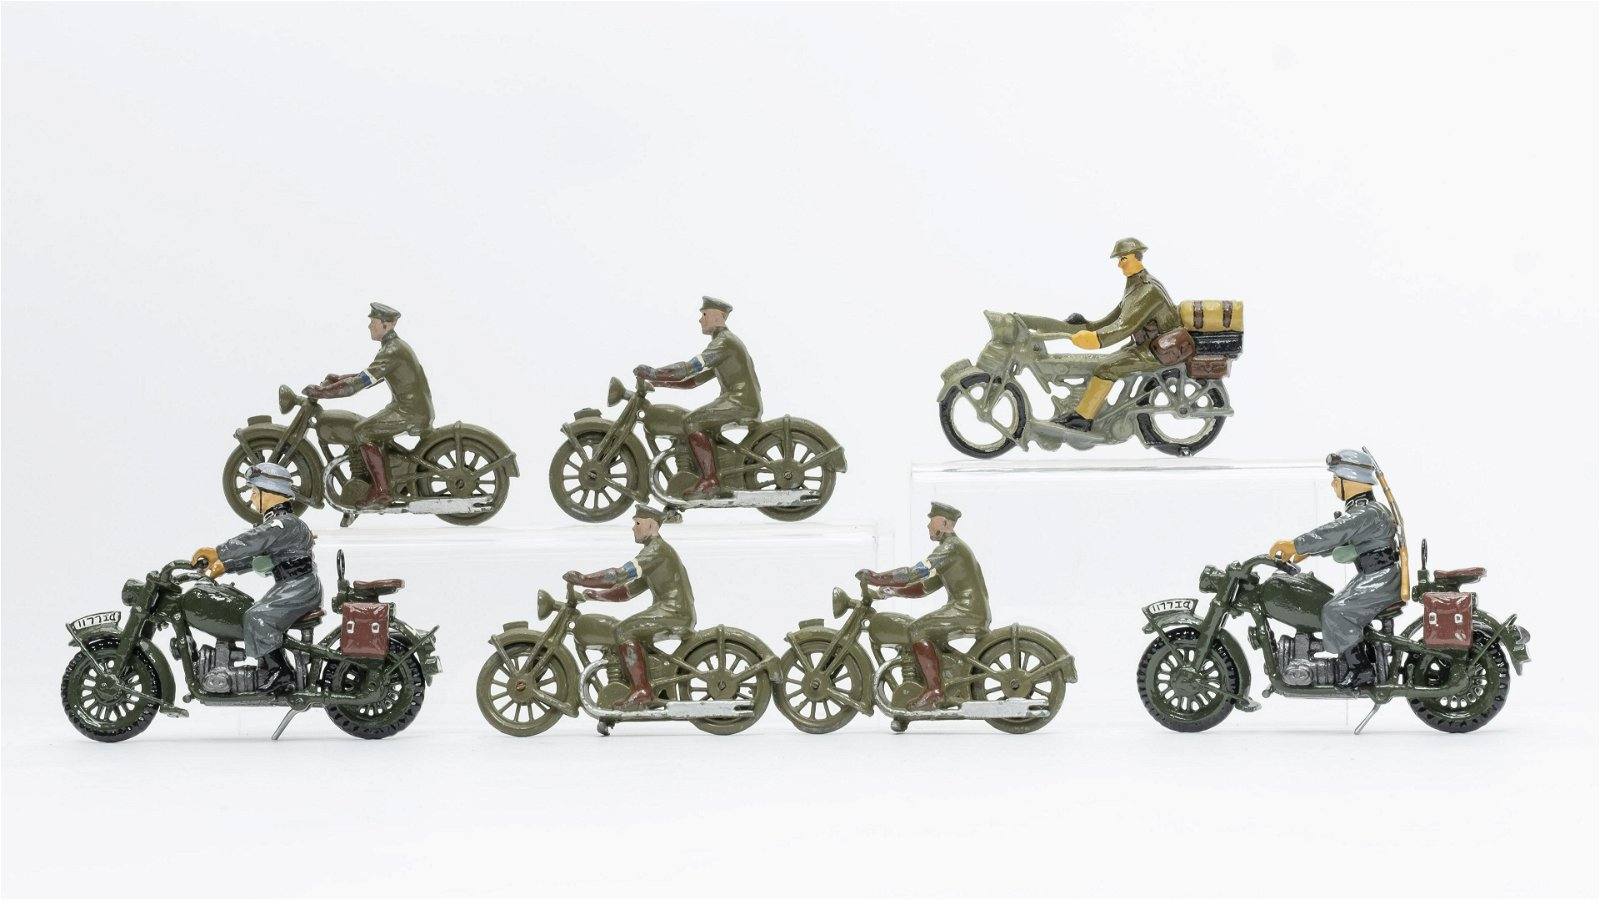 Military Motorcycle Toy Group of 7